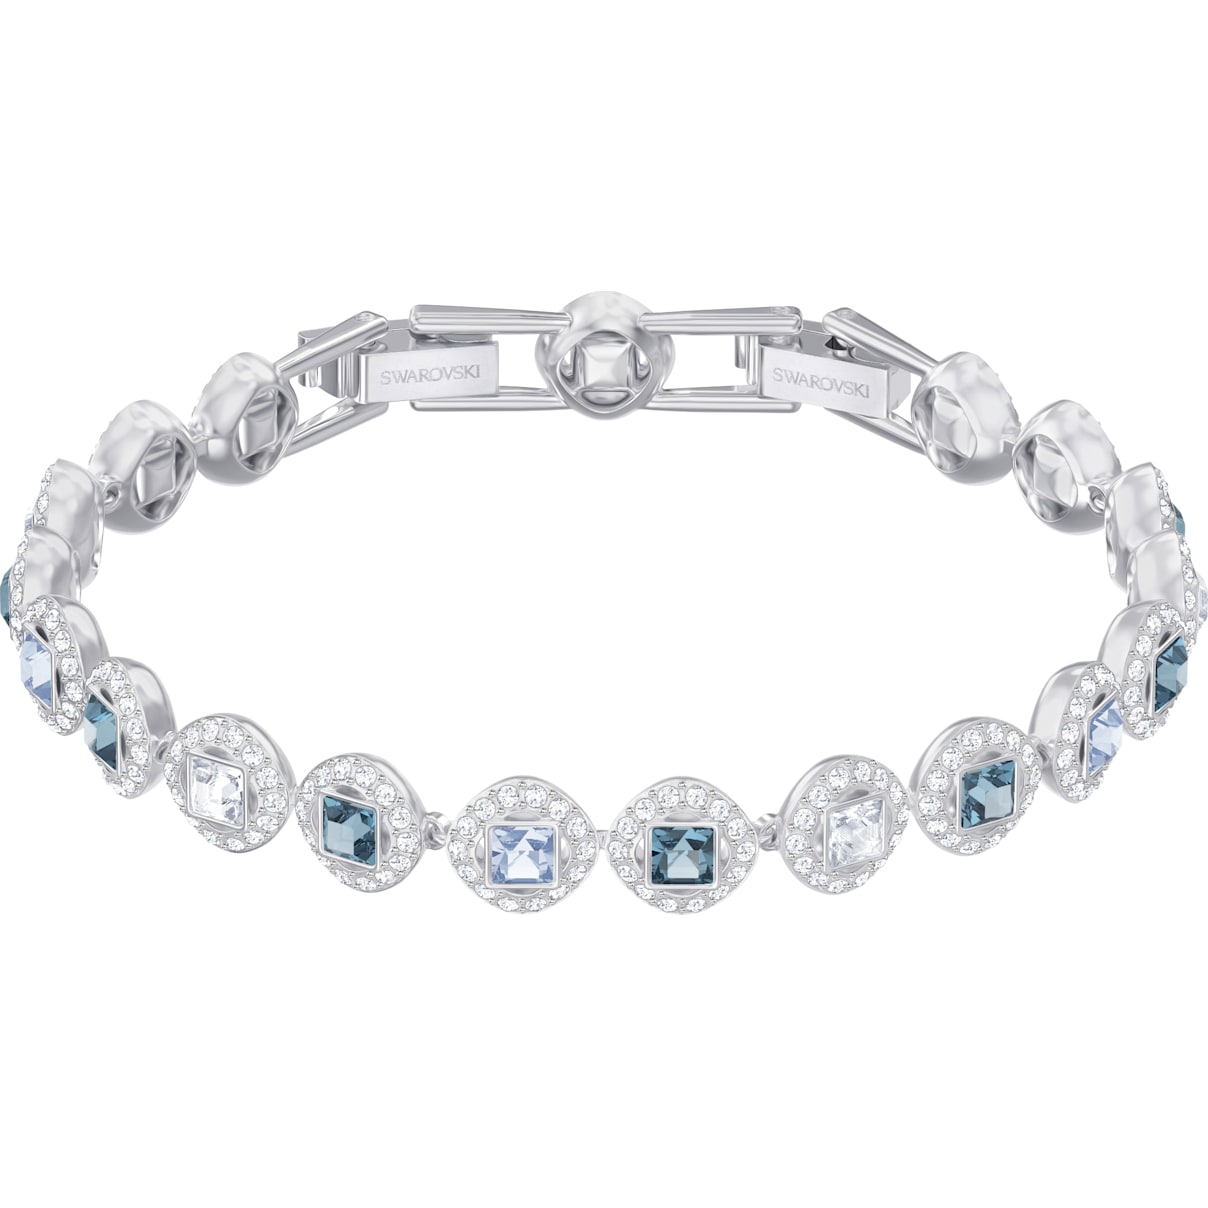 Swarovski Angelic Square Bracelet, Blue, Rhodium plated